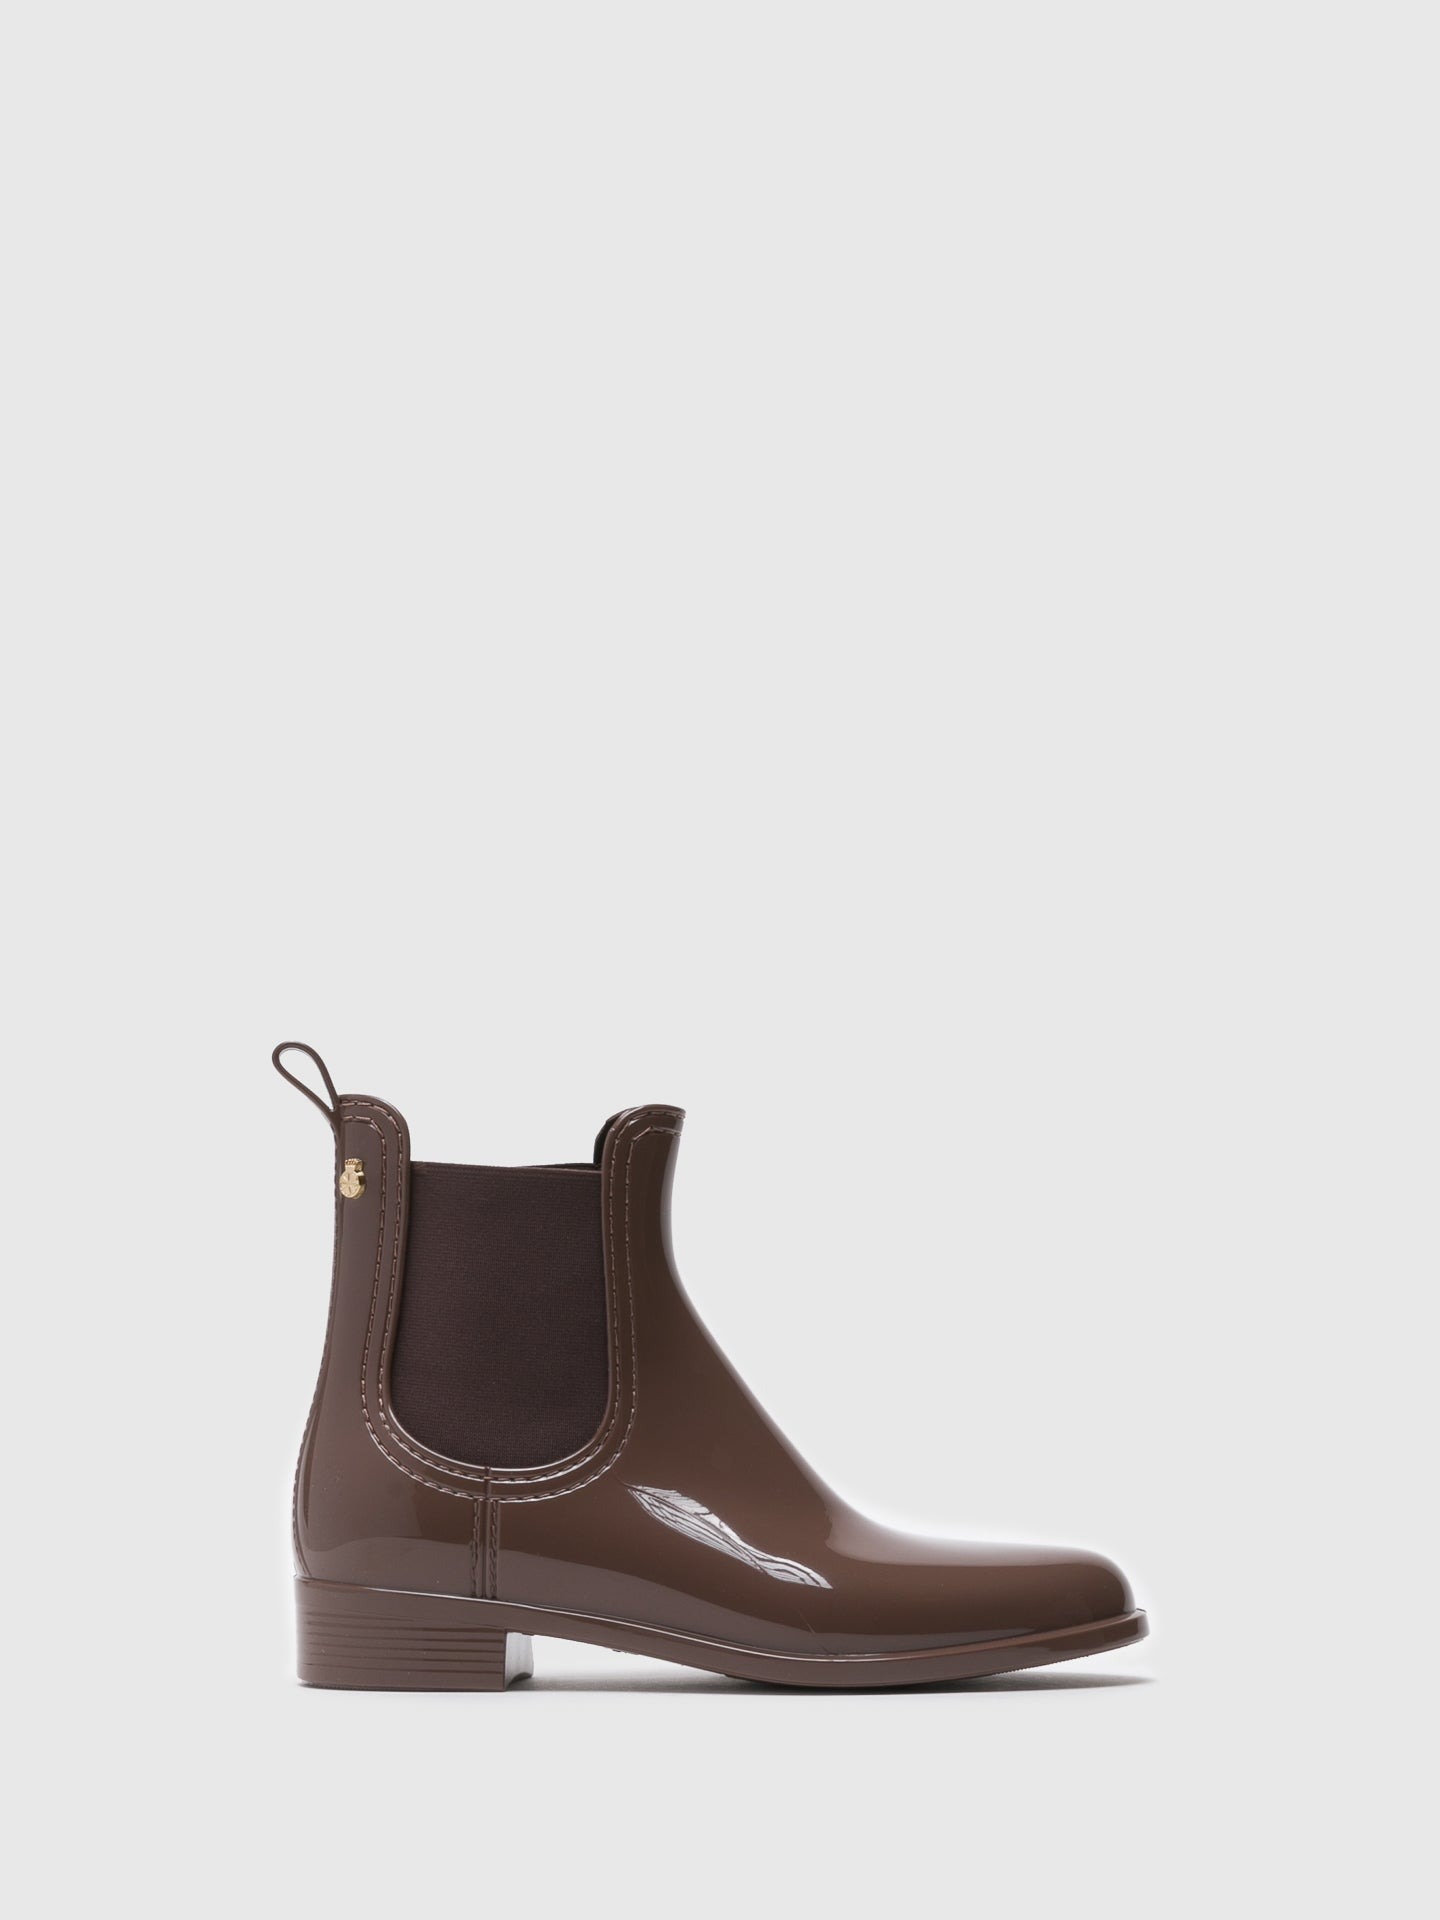 Lemon Jelly Brown Chelsea Ankle Boots